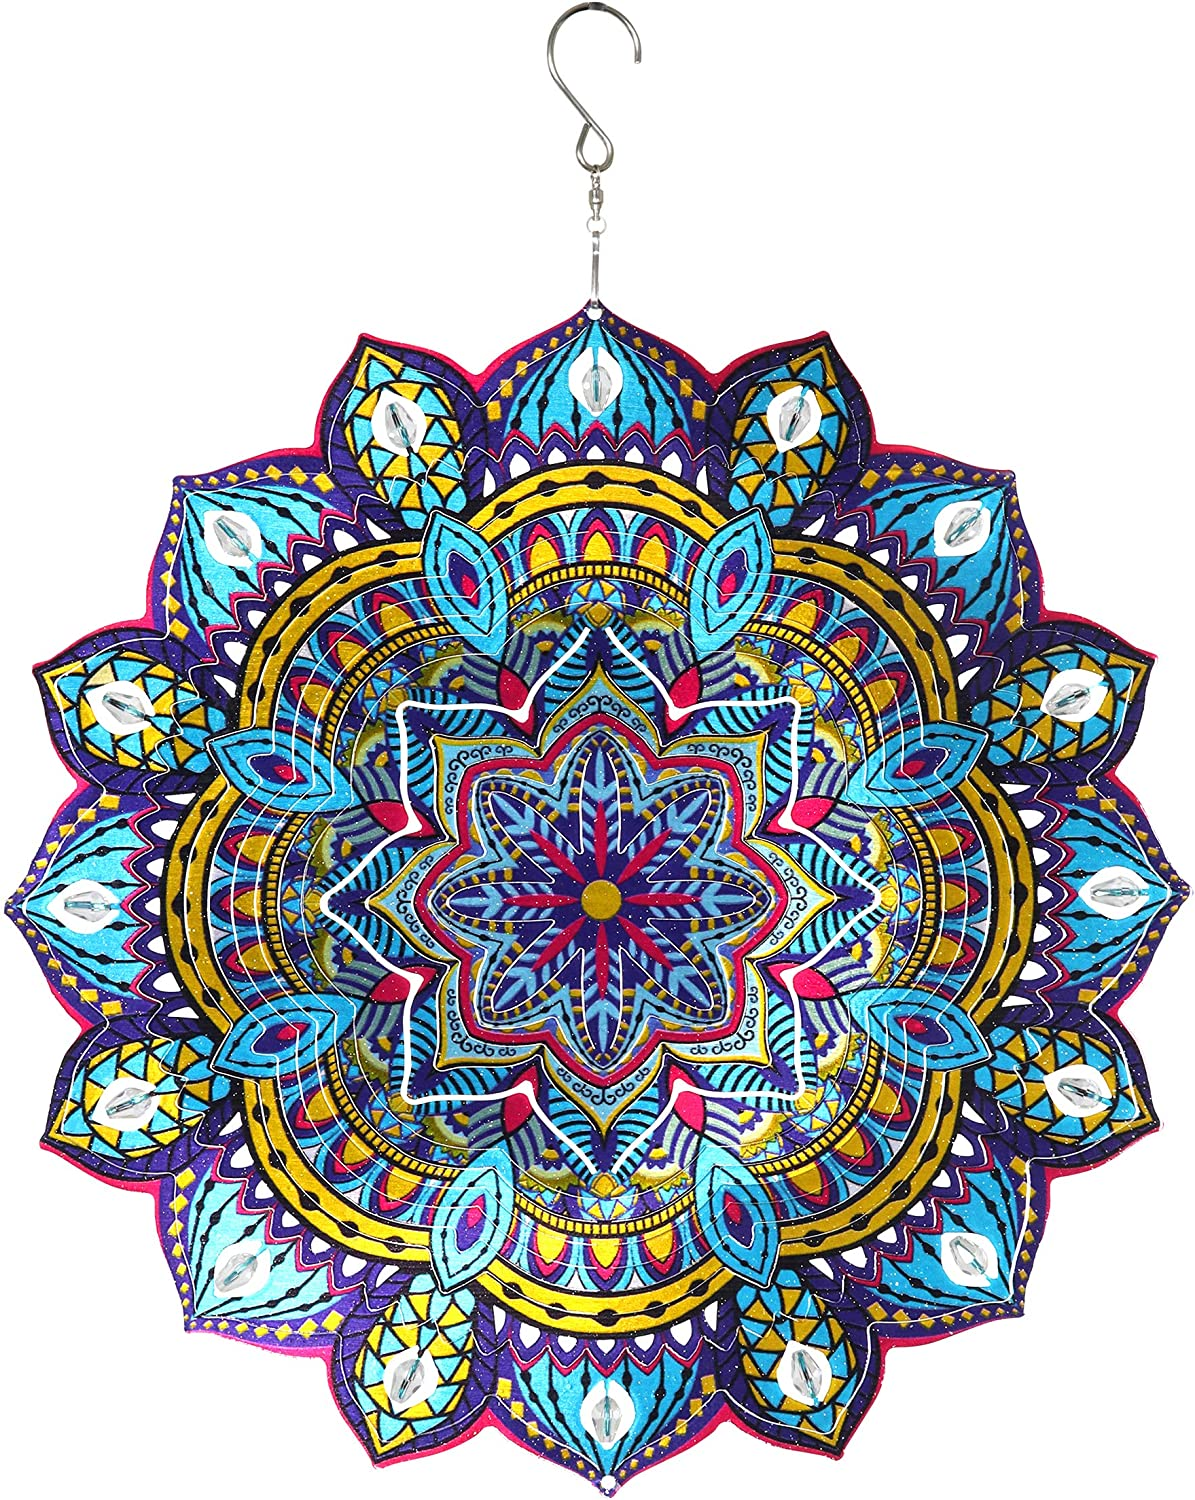 Exhart 3D Mandala Wind Spinner – Laser Cut Metal Mandala Art Hanging Décor w/Crystal Accent Beads –Starburst Décor, Hanging Wind Spinner, 3D Metal Art, Indoor/Outdoor Decor, 12 Inches